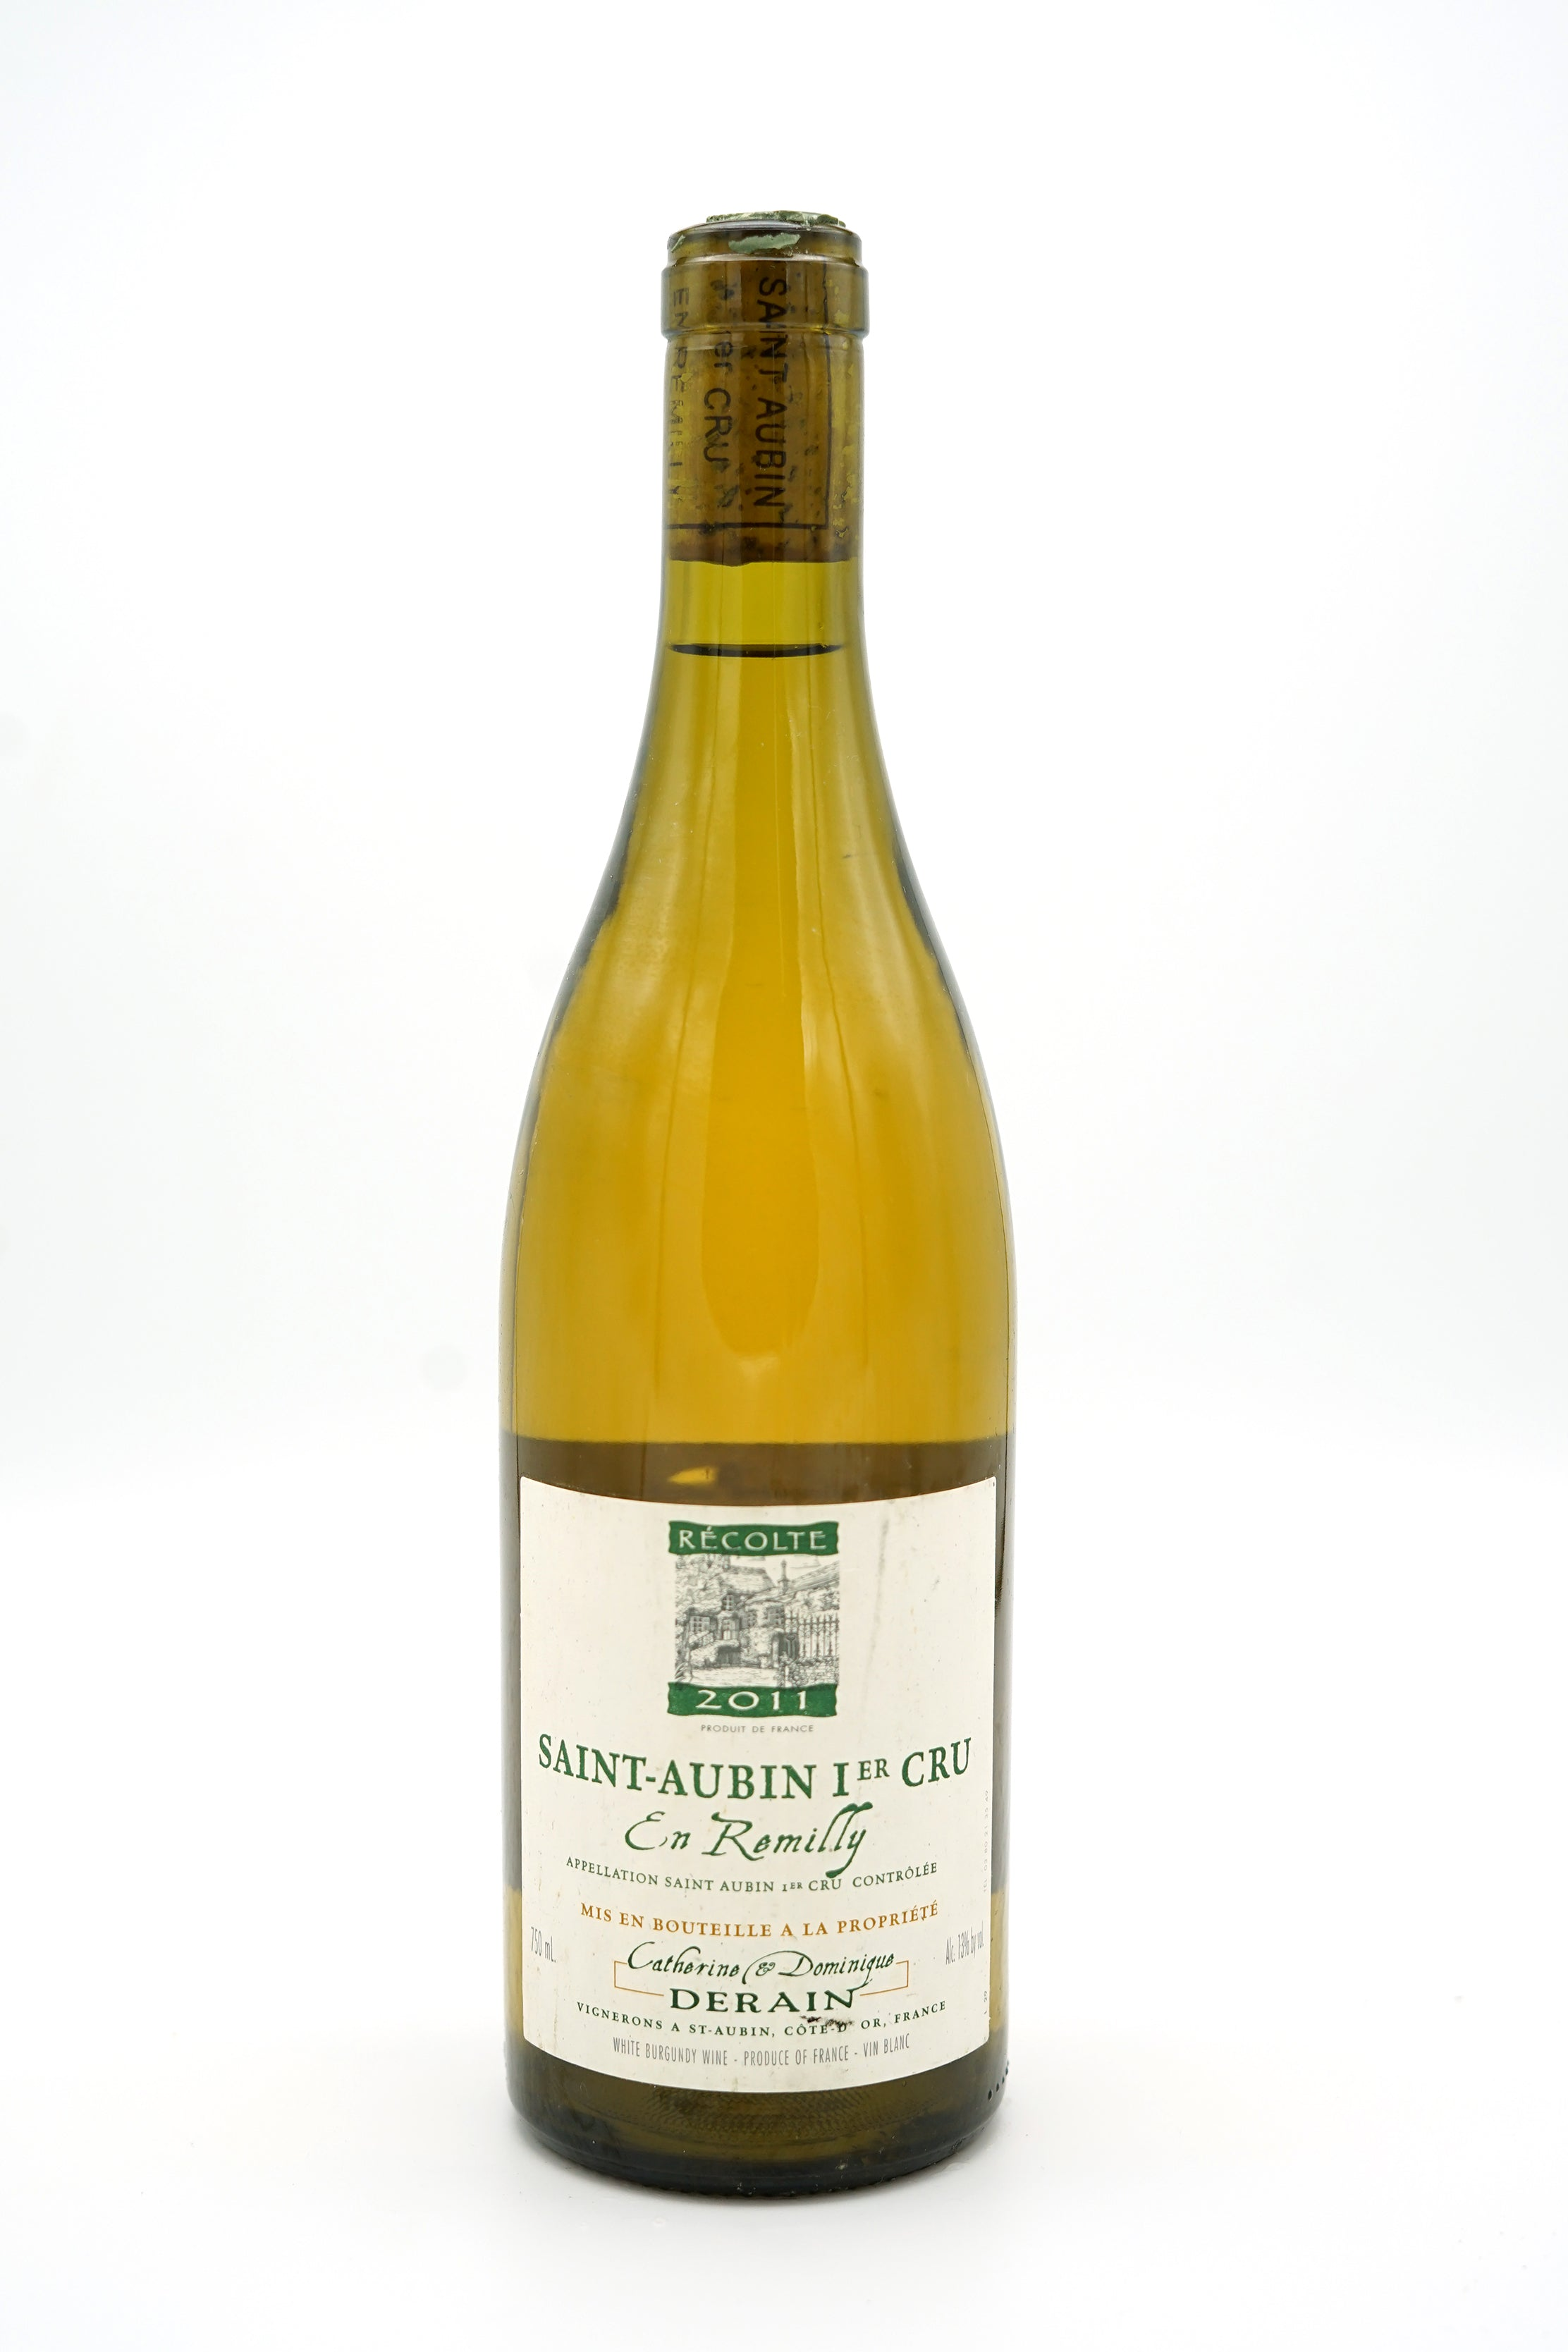 Saint-Aubin 1er cru En Remilly 2011 - Domaine Derain - SOLD OUT